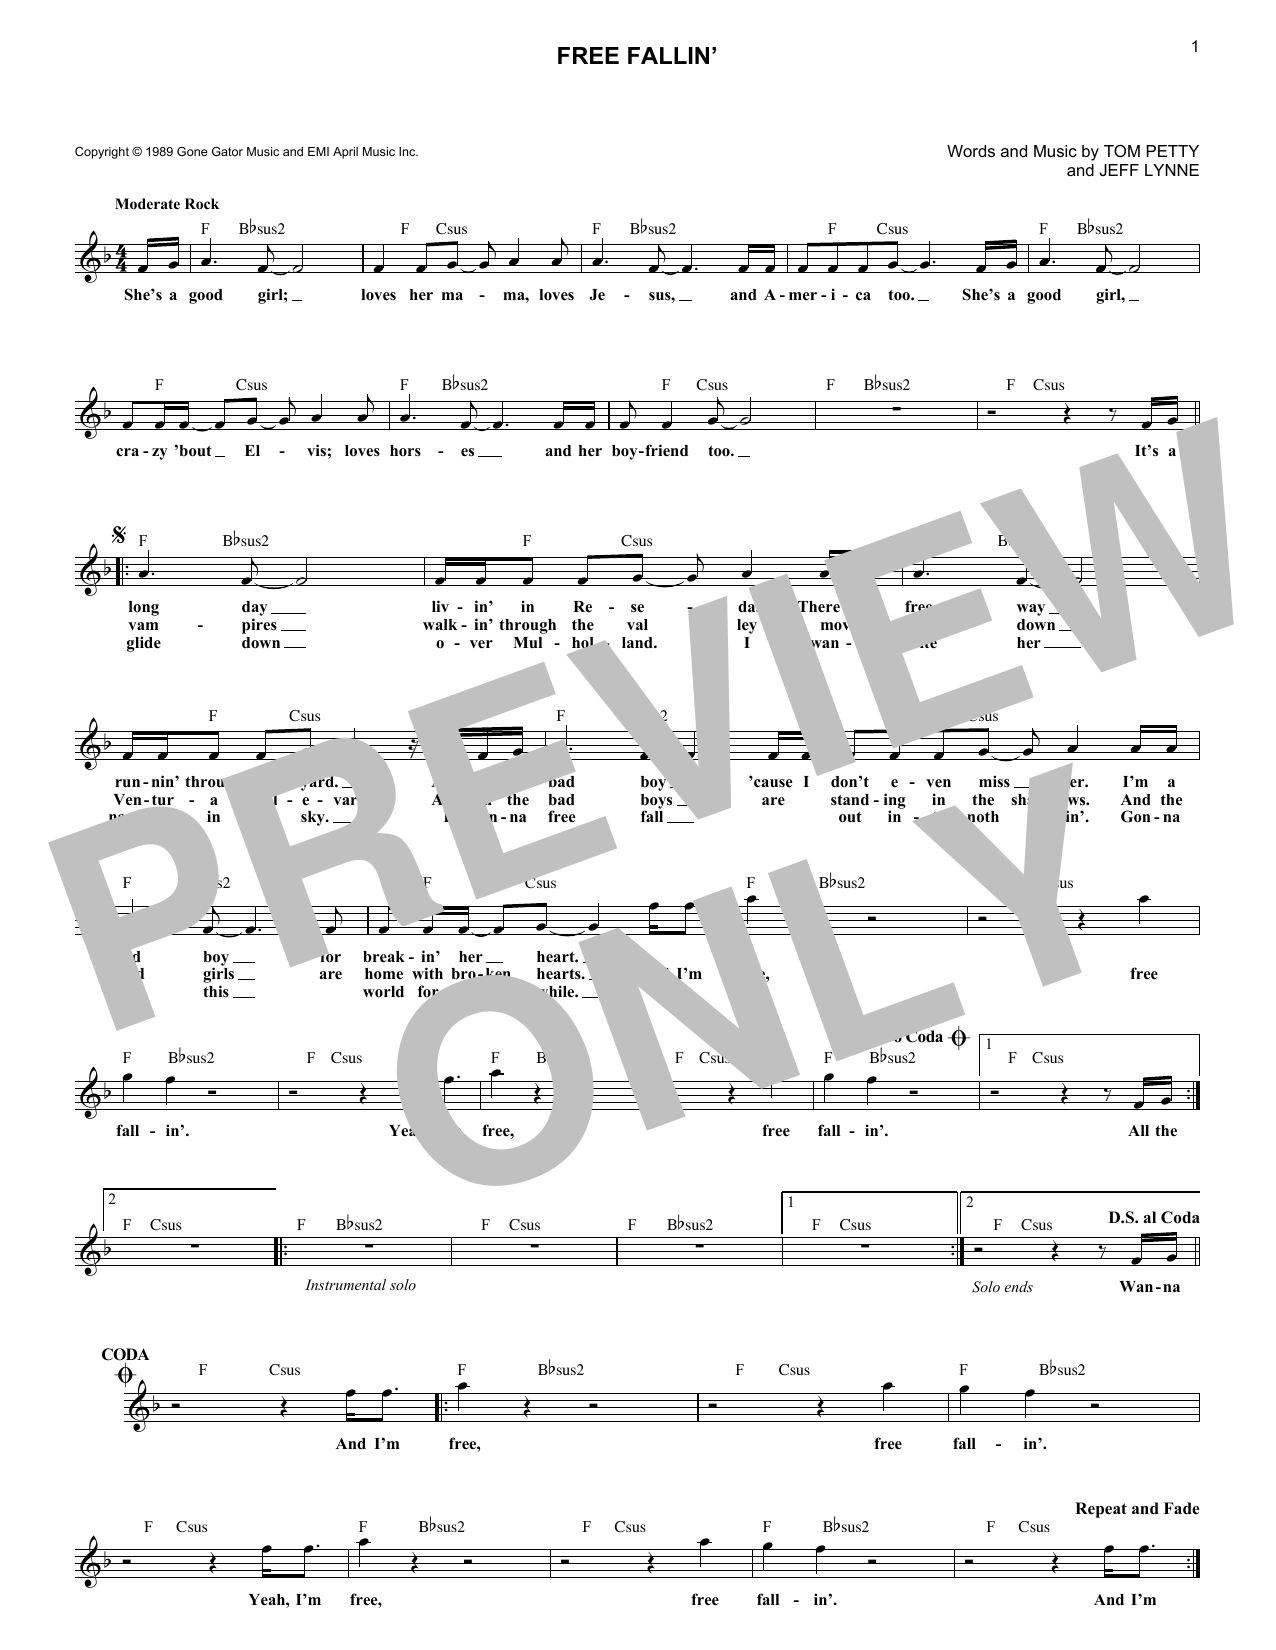 Tom Petty Free Fallin Sheet Music Notes Chords Printable Rock